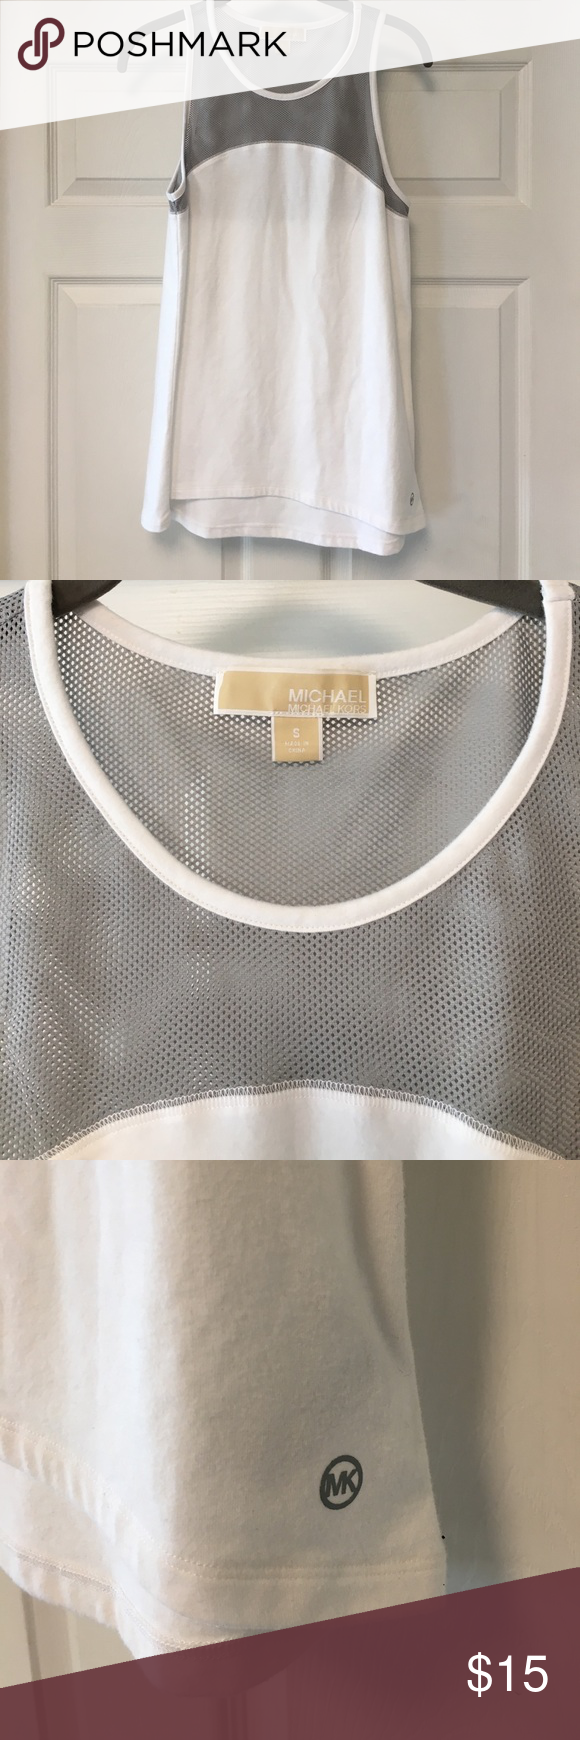 ❌$5 BUNDLED! Michael Kors Workout Tank Soft white workout tank with gray mesh. Great condition. Bundle with anything else for deal! Use offer button!*c MICHAEL Michael Kors Tops Tank Tops